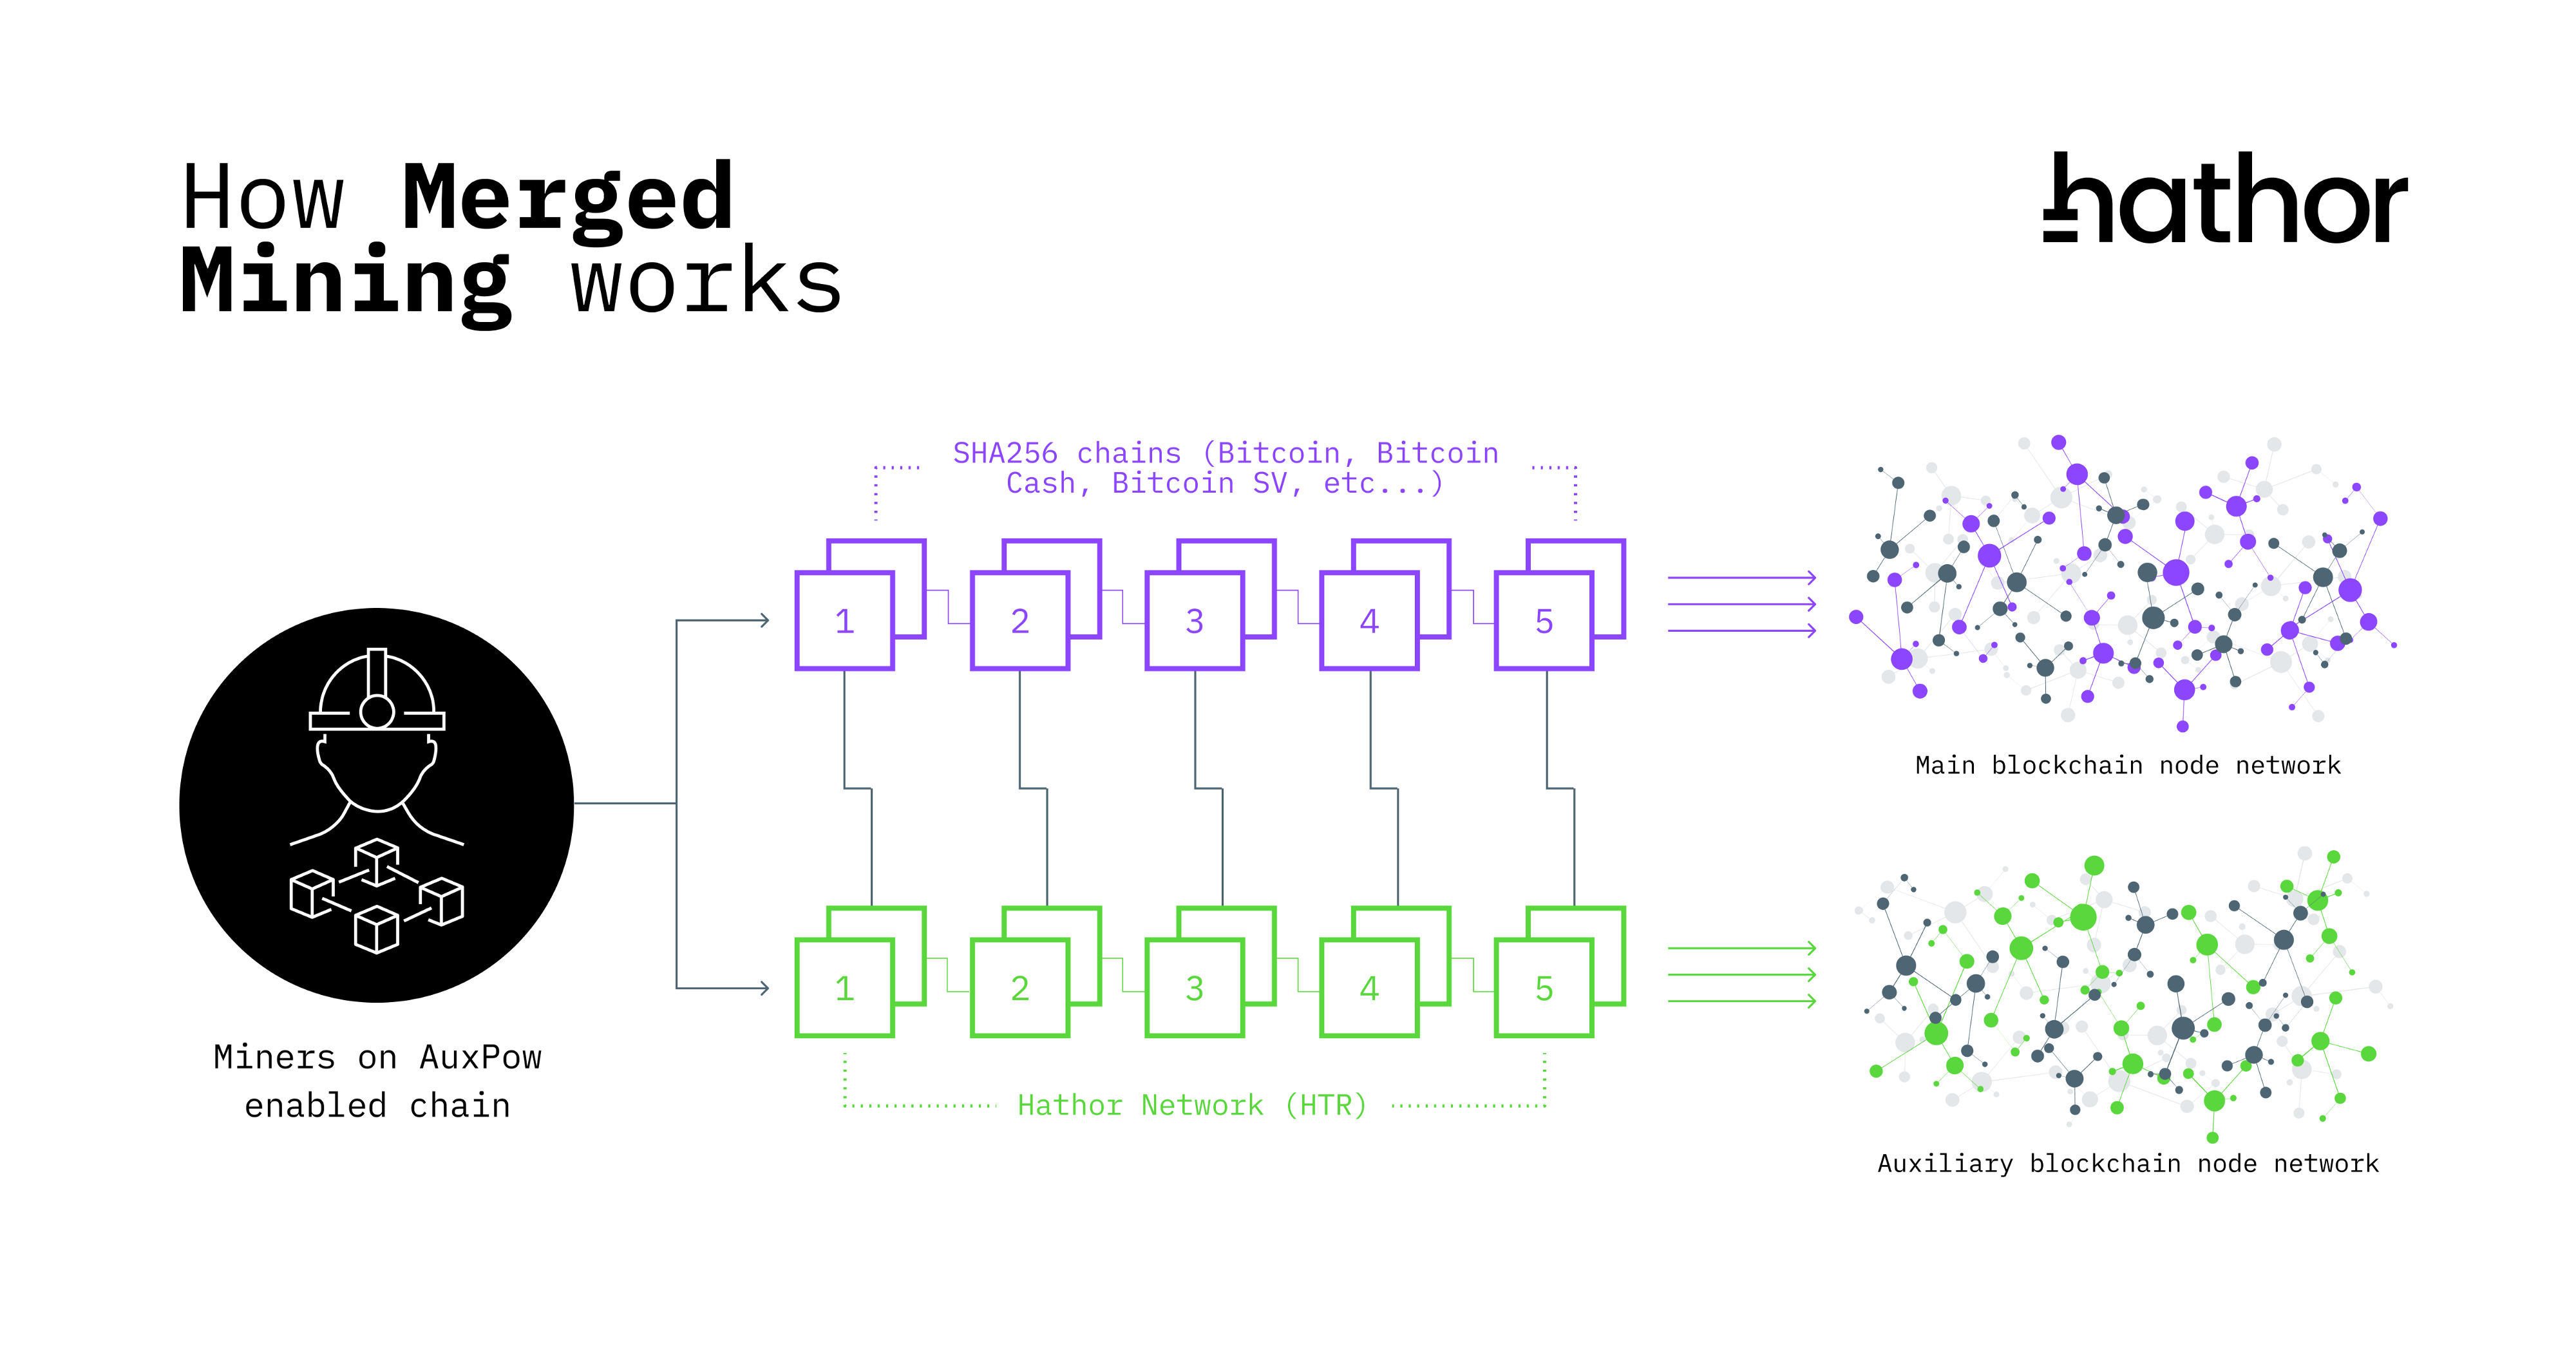 Infographic explaining how Merged Mining works: SHA256 miners (such as Bitcoin, Bitcoin Cash, Bitcoin SV, etc…) can secure blocks on separate chains and claim rewards on both